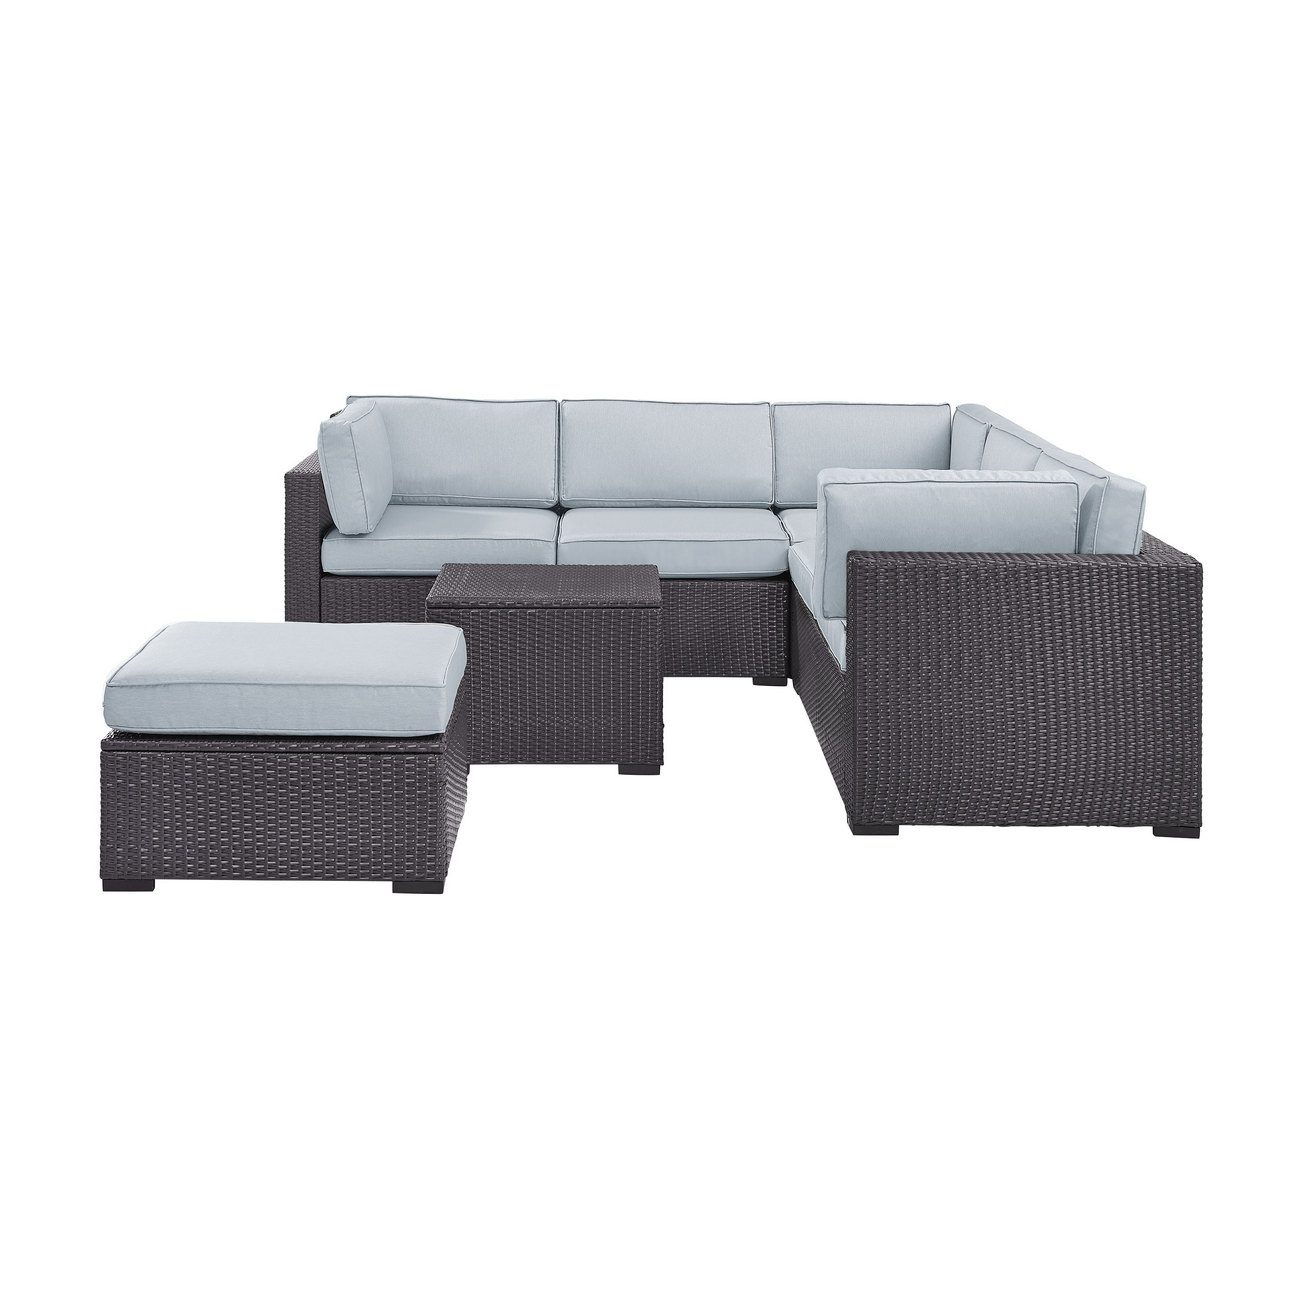 Crosley Brands Biscayne Person Outdoor Wicker Seating Set Mist Two